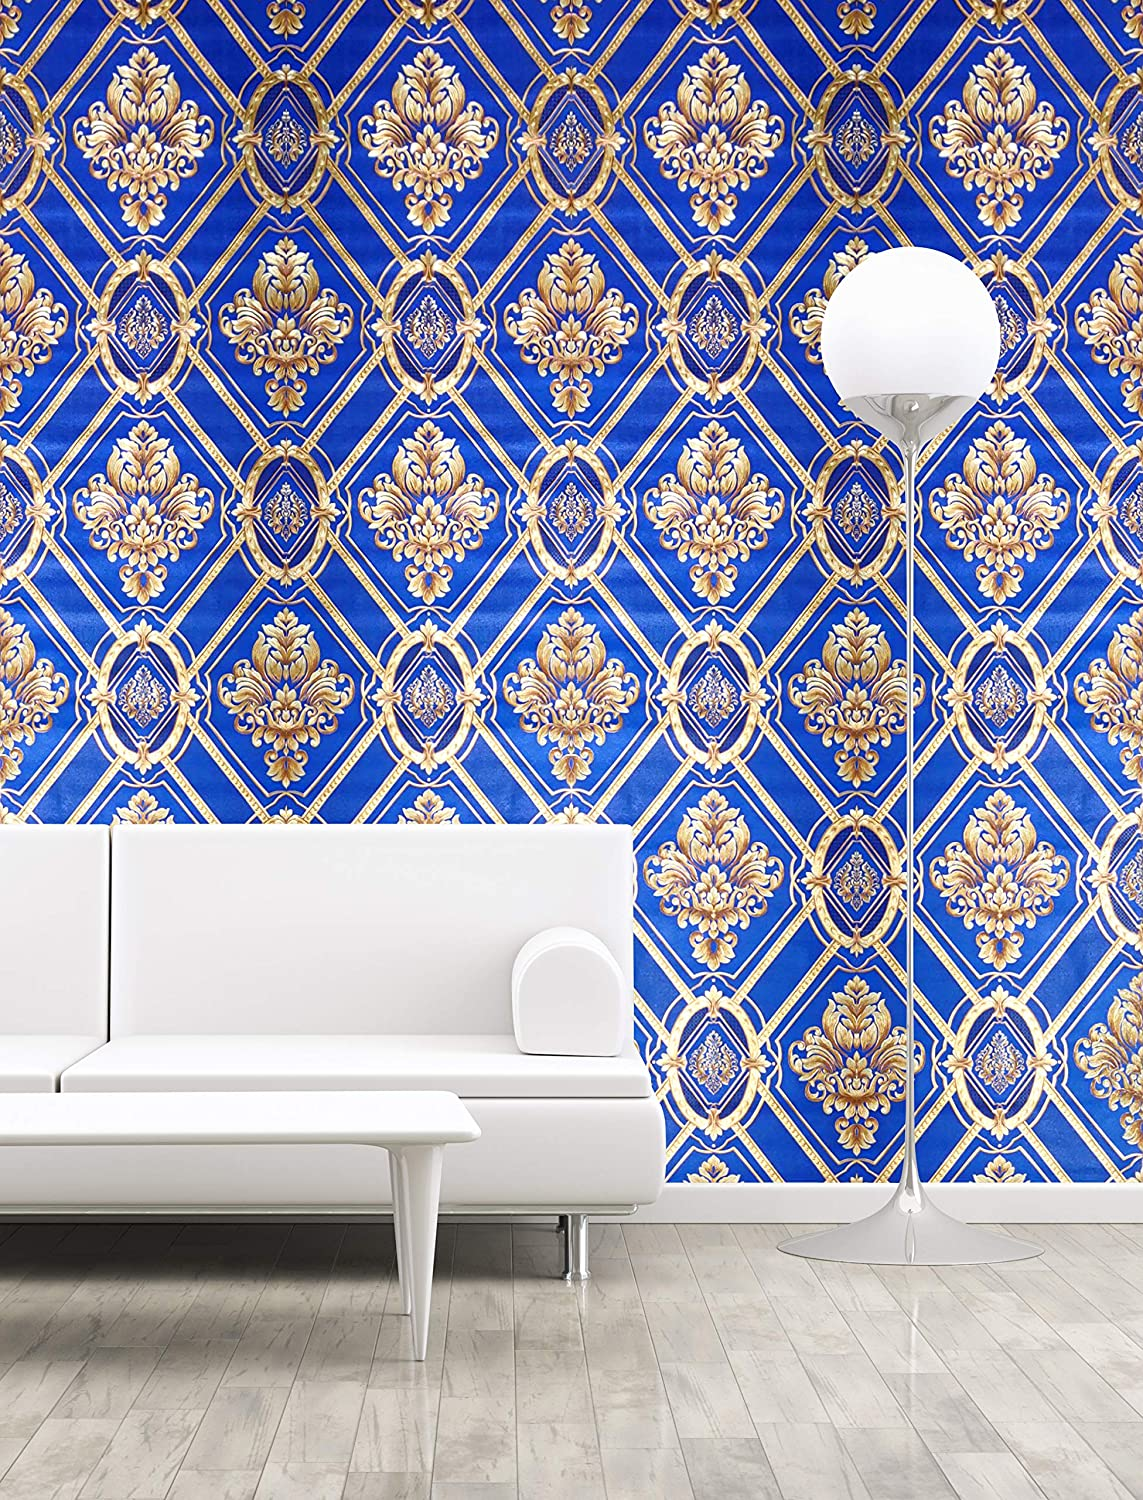 Buy Konark Designer Wallpapers Damask Design Wallpaper Vinyl Blue And Gold 57sqft Online At Low Prices In India Amazon In